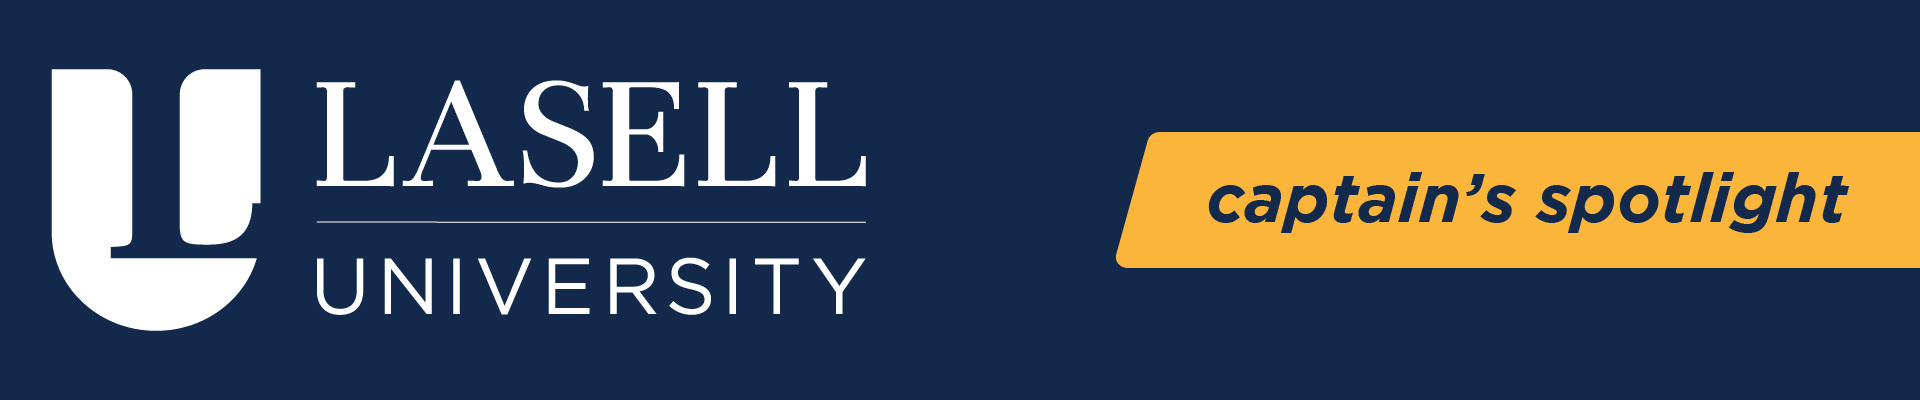 BSSC Lasell University Captain's Spotlight Blue and Yellow 2019 Logo